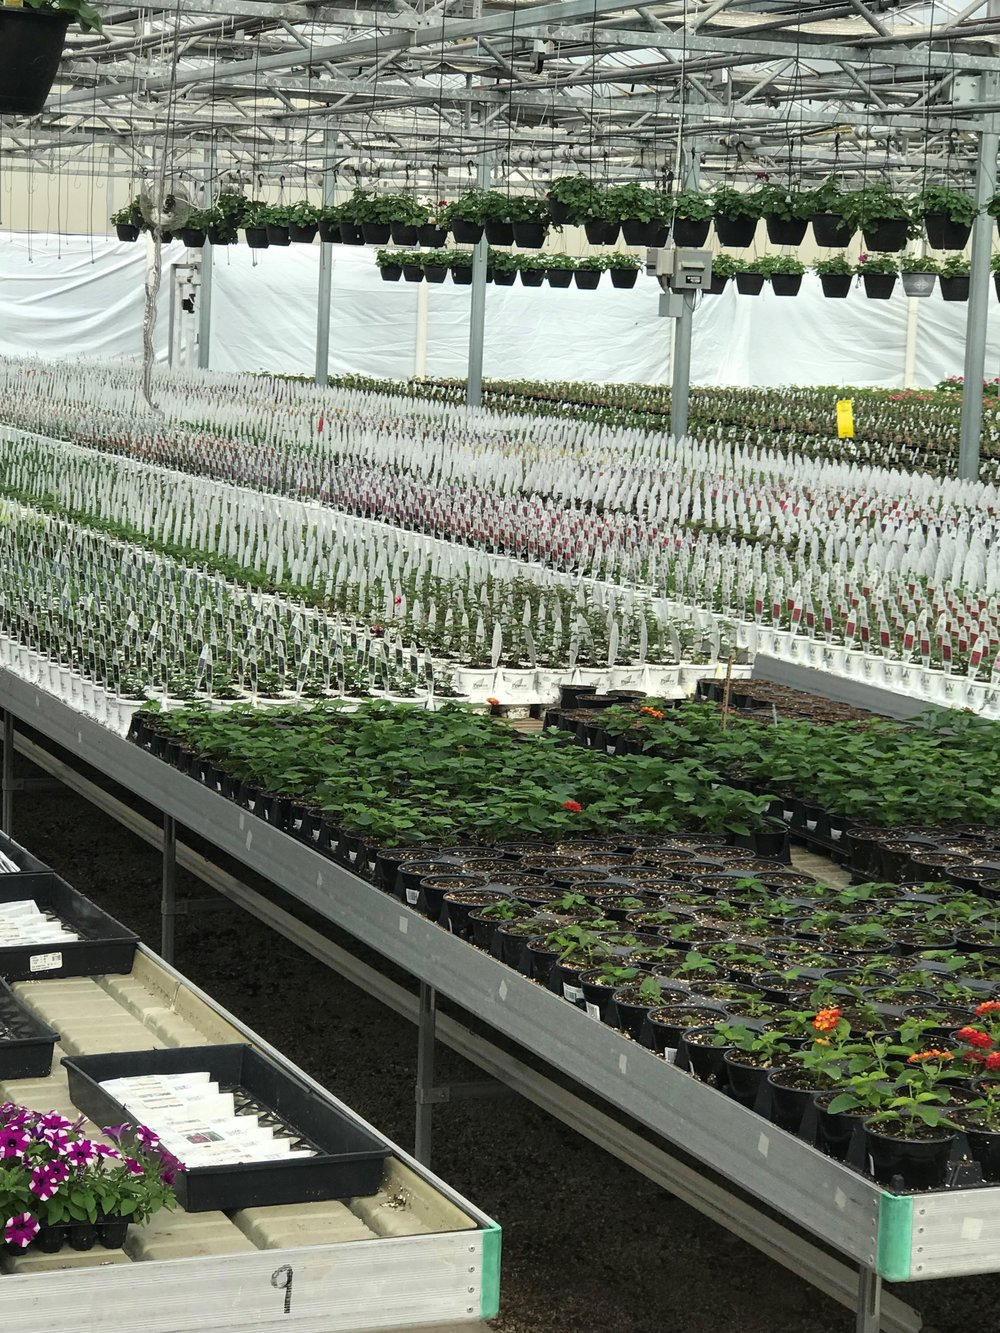 Rows and rows of tables with a wide variety of flowers await gardeners and weather that's just a little bit warmer